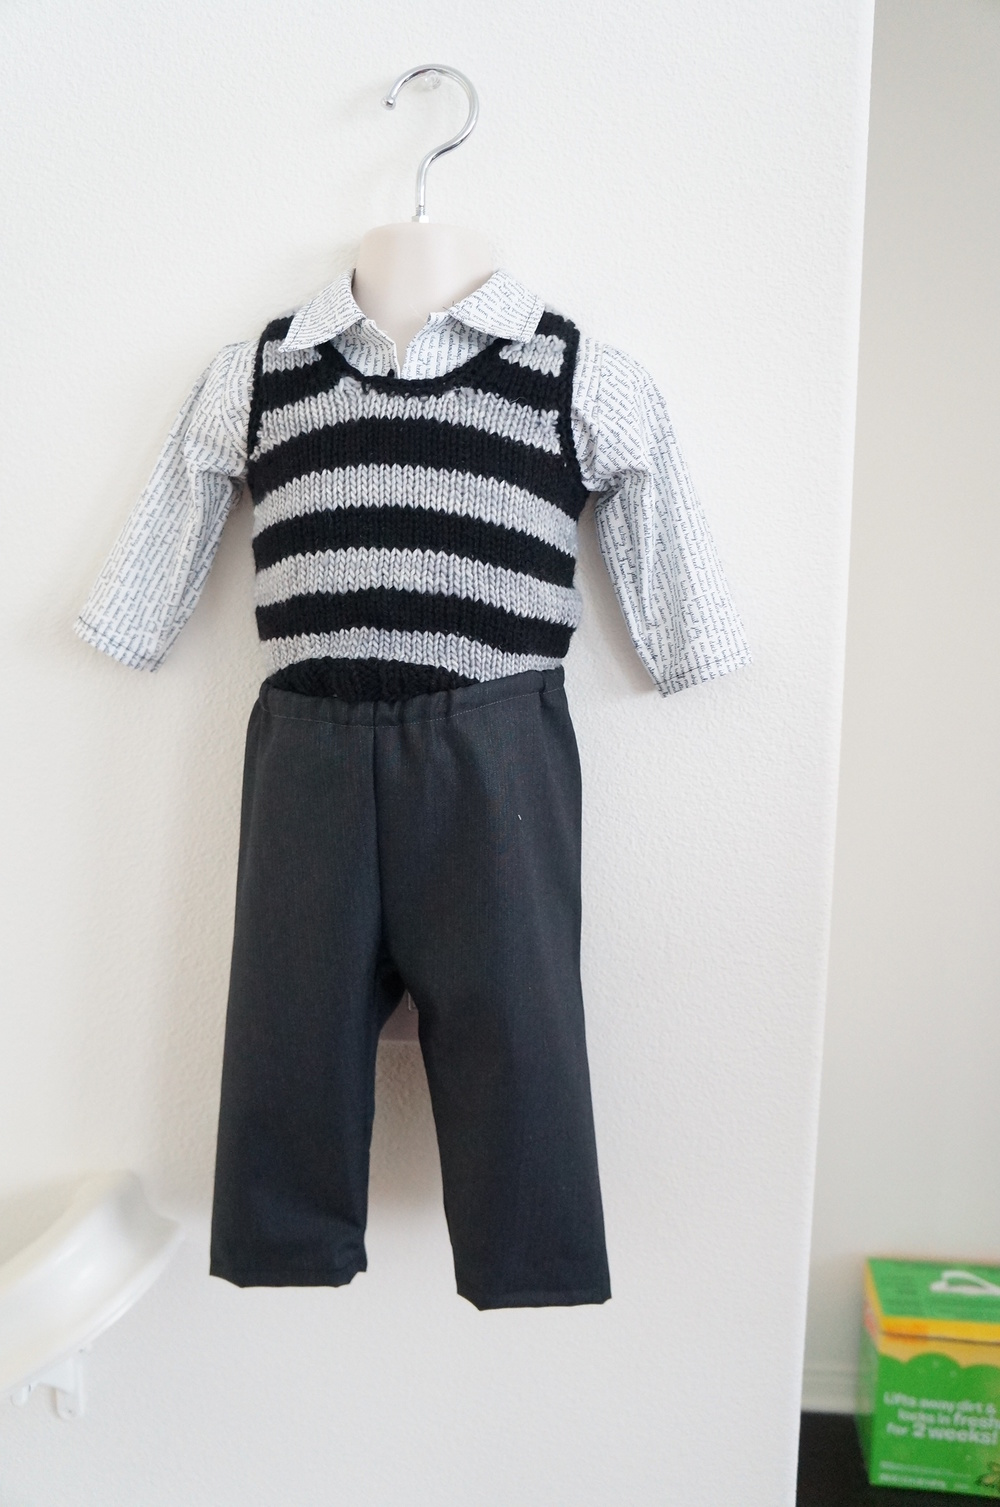 My version for Logan - knitted vest, sewn shirt and pants | Handmade Fashion at Candy & Bagel